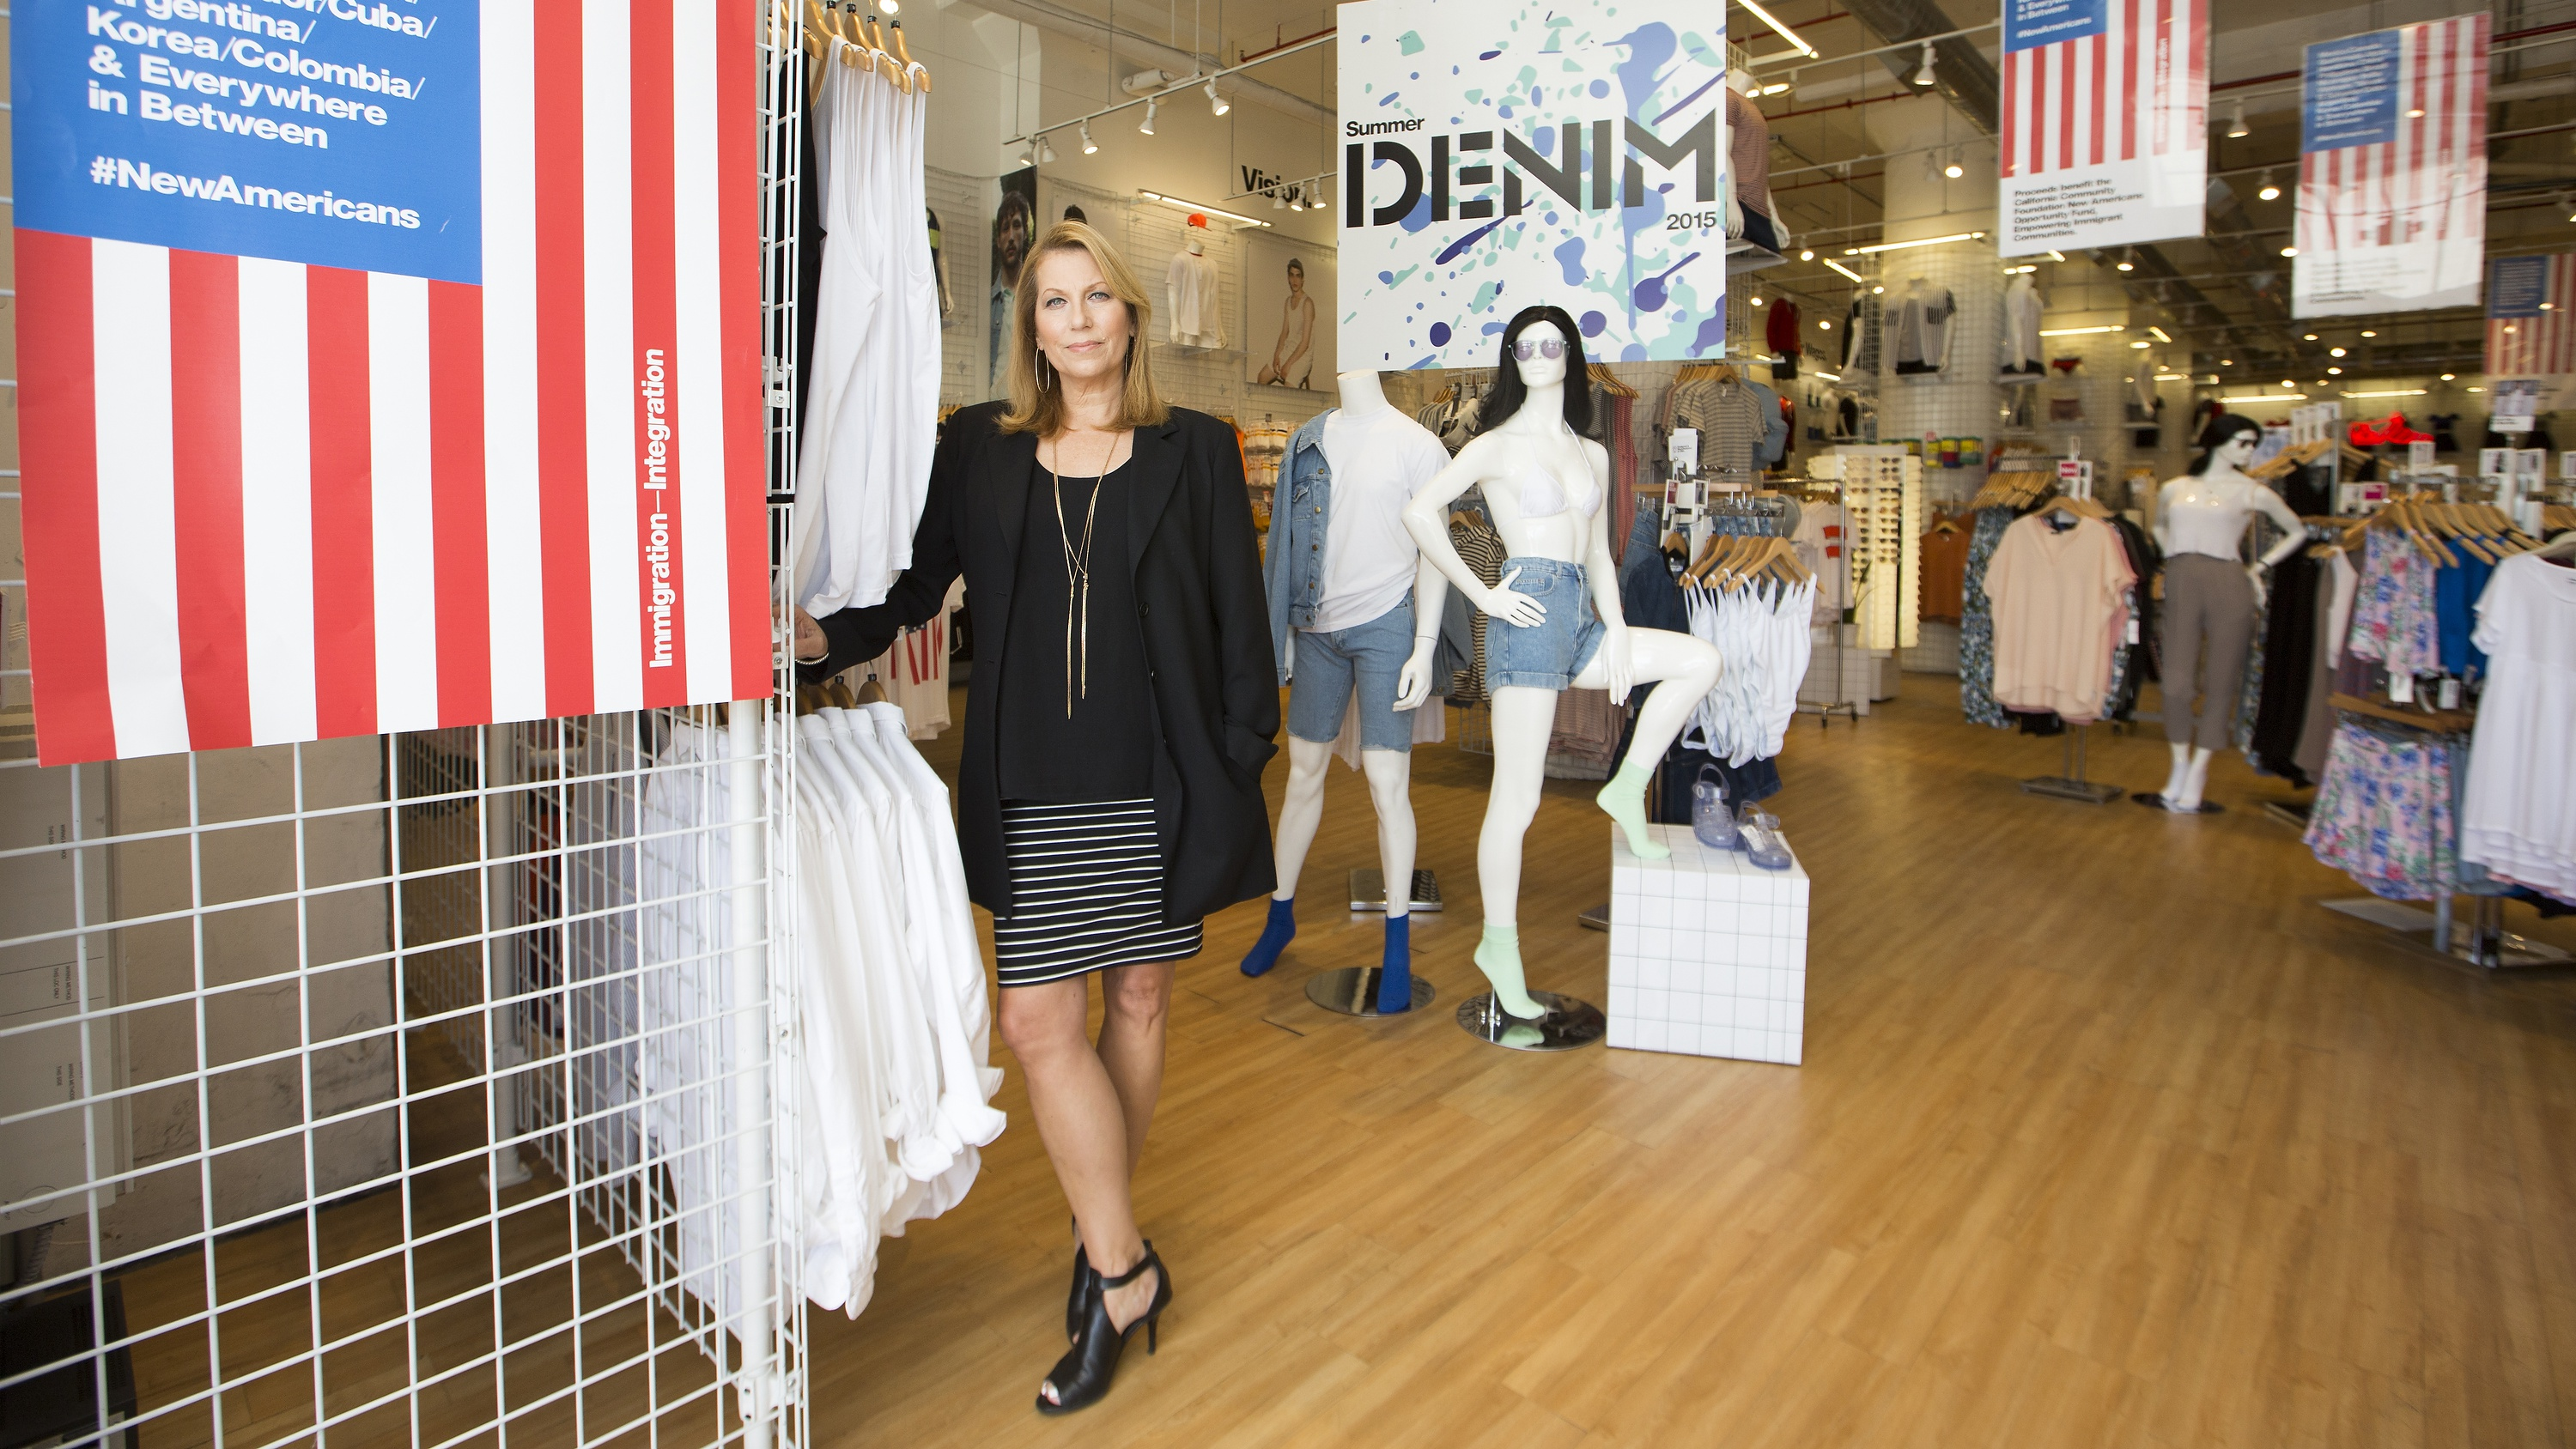 In this Friday, June 19, 2015 photo, American Apparel CEO Paula Schneider poses for a photo in Los Angeles. American Apparel is North America's largest apparel manufacturer.